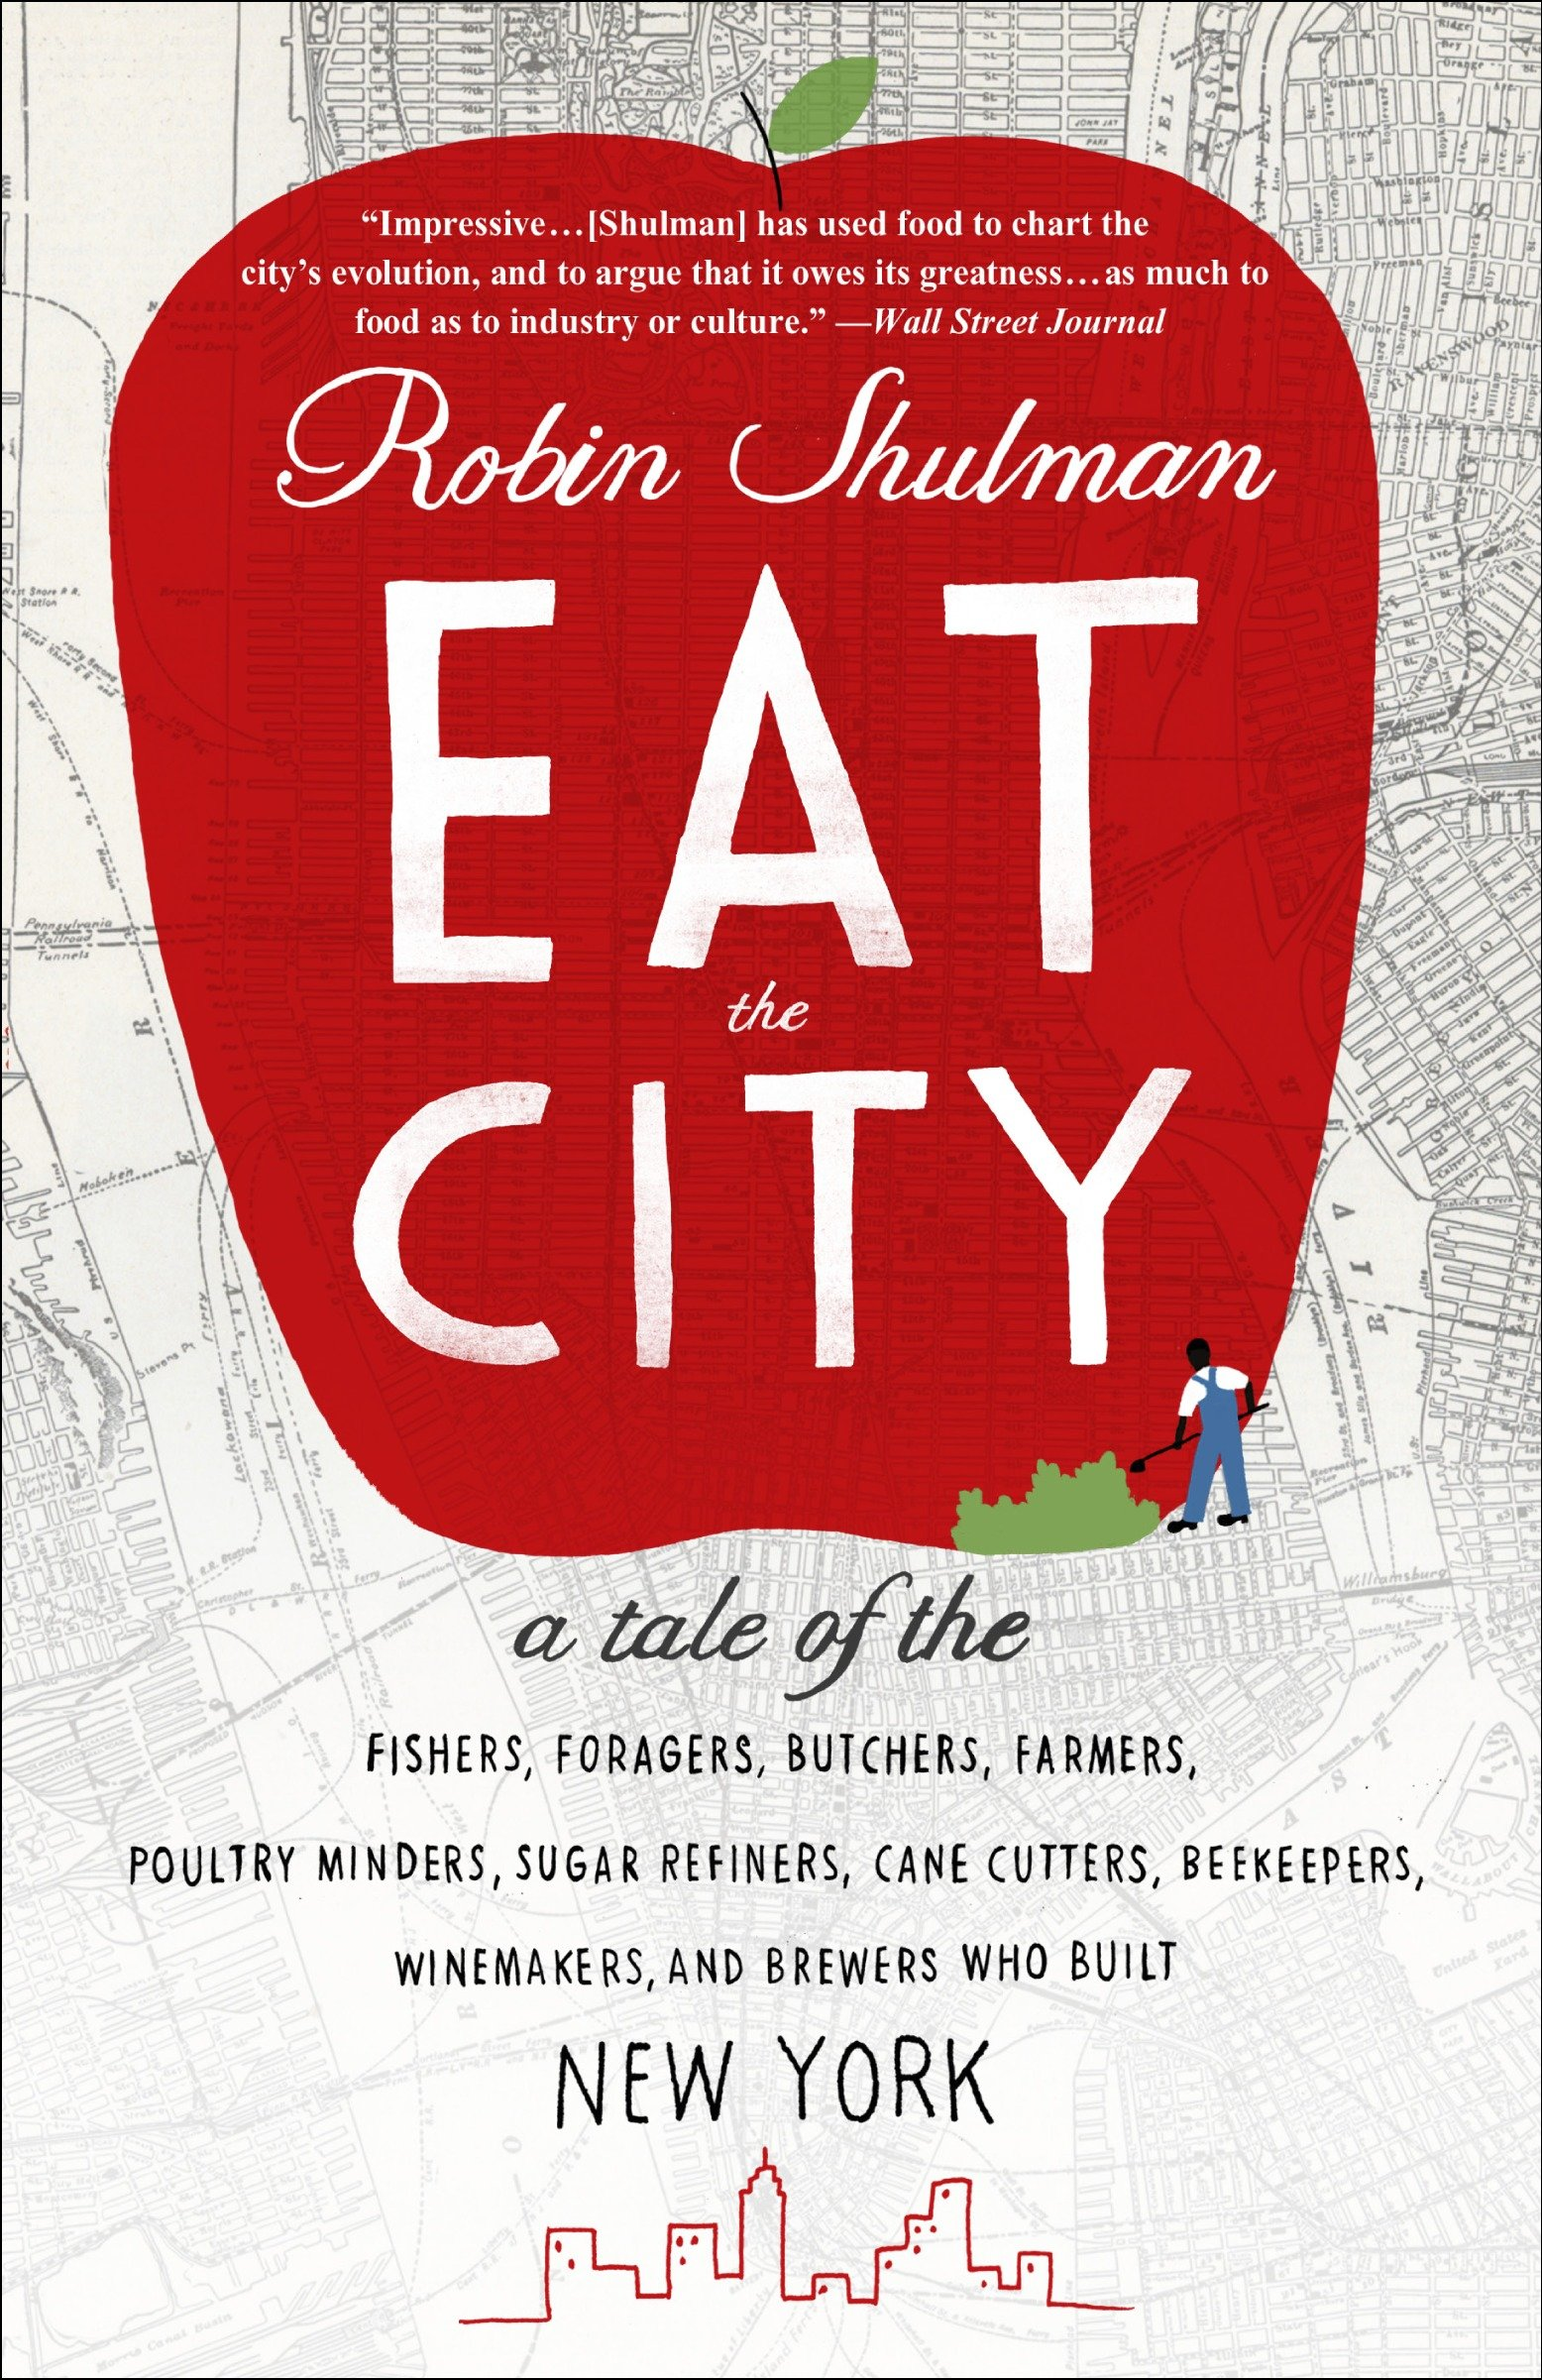 Eat the City A Tale of the Fishers, Foragers, Butchers, Farmers, Poultry Minders, Sugar Refiners, Cane Cutters, Beekeepers, Winemakers, and Brewers Who Built New York